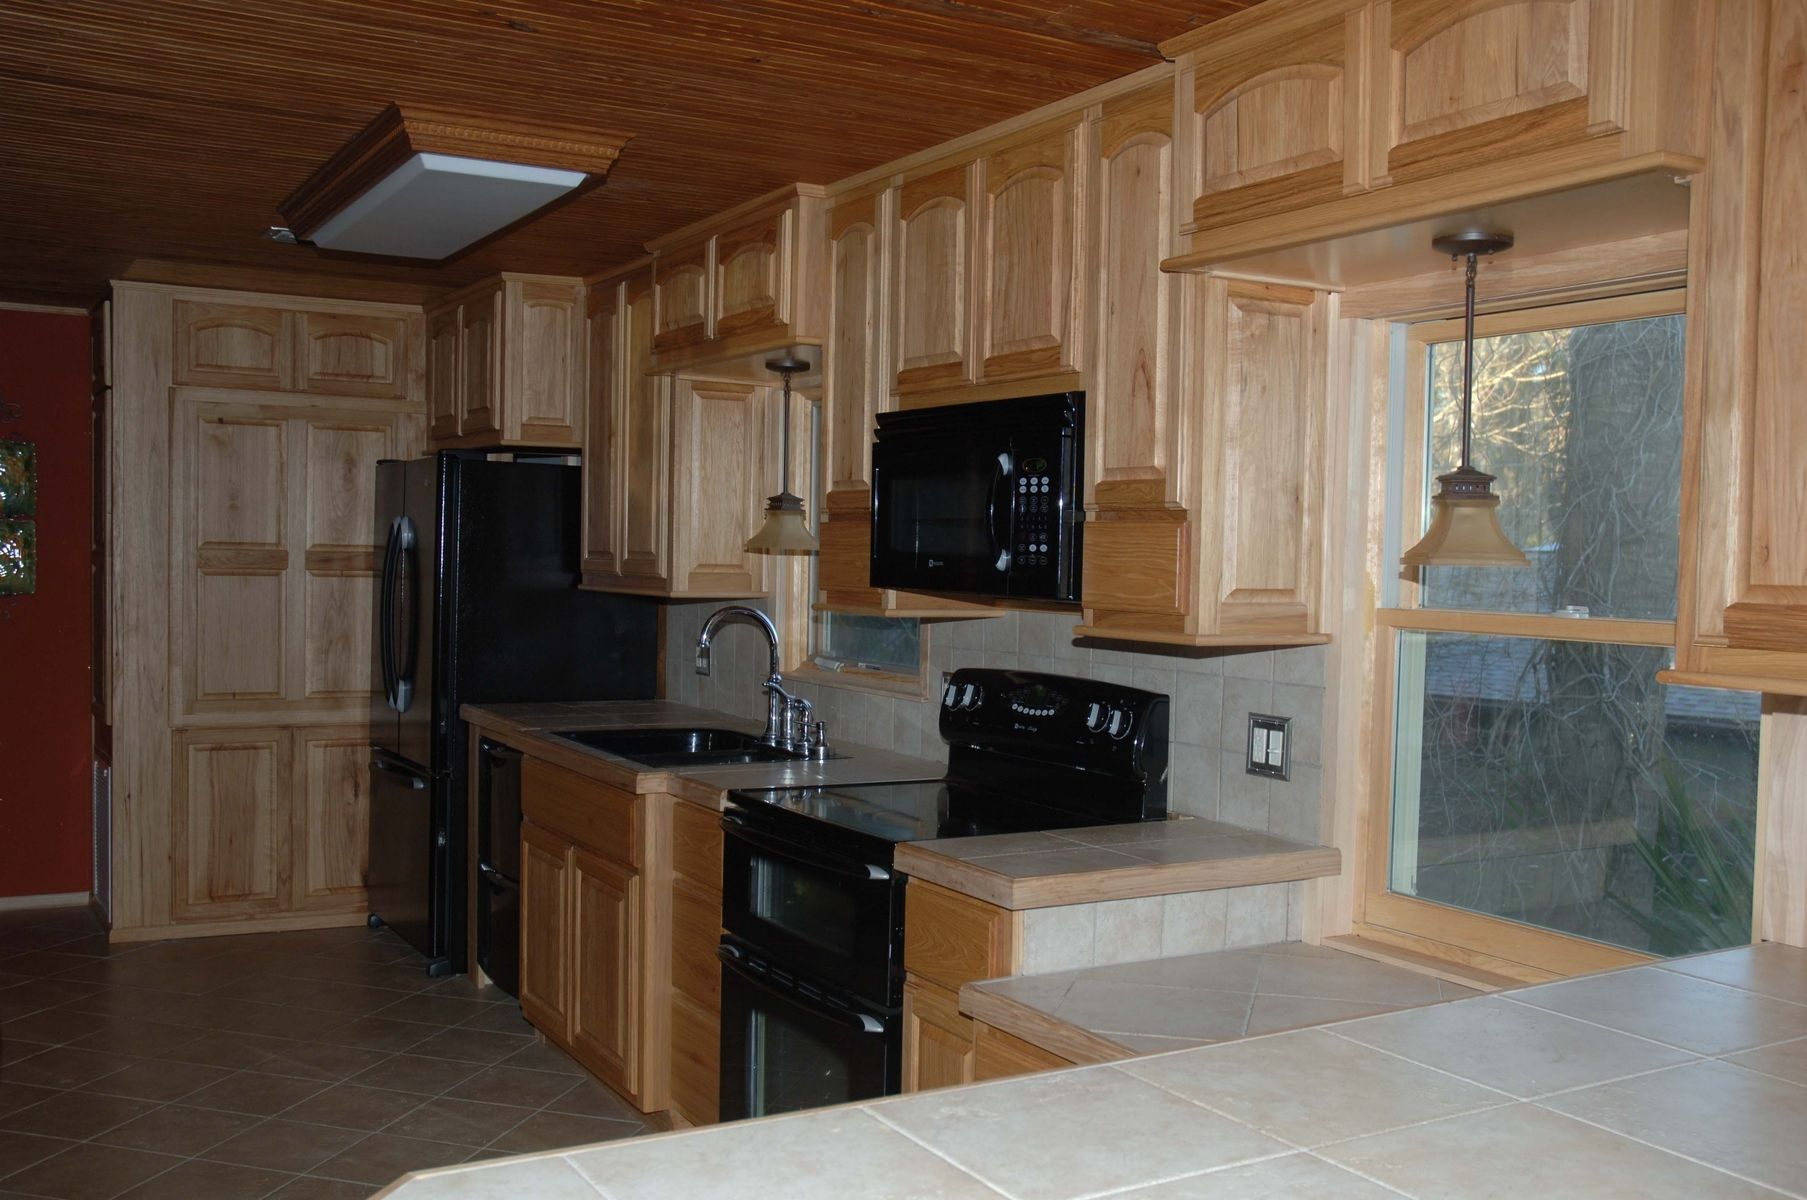 Custom hickory kitchen cabinets by natural mystic woodwork for A z kitchen cabinets ltd calgary